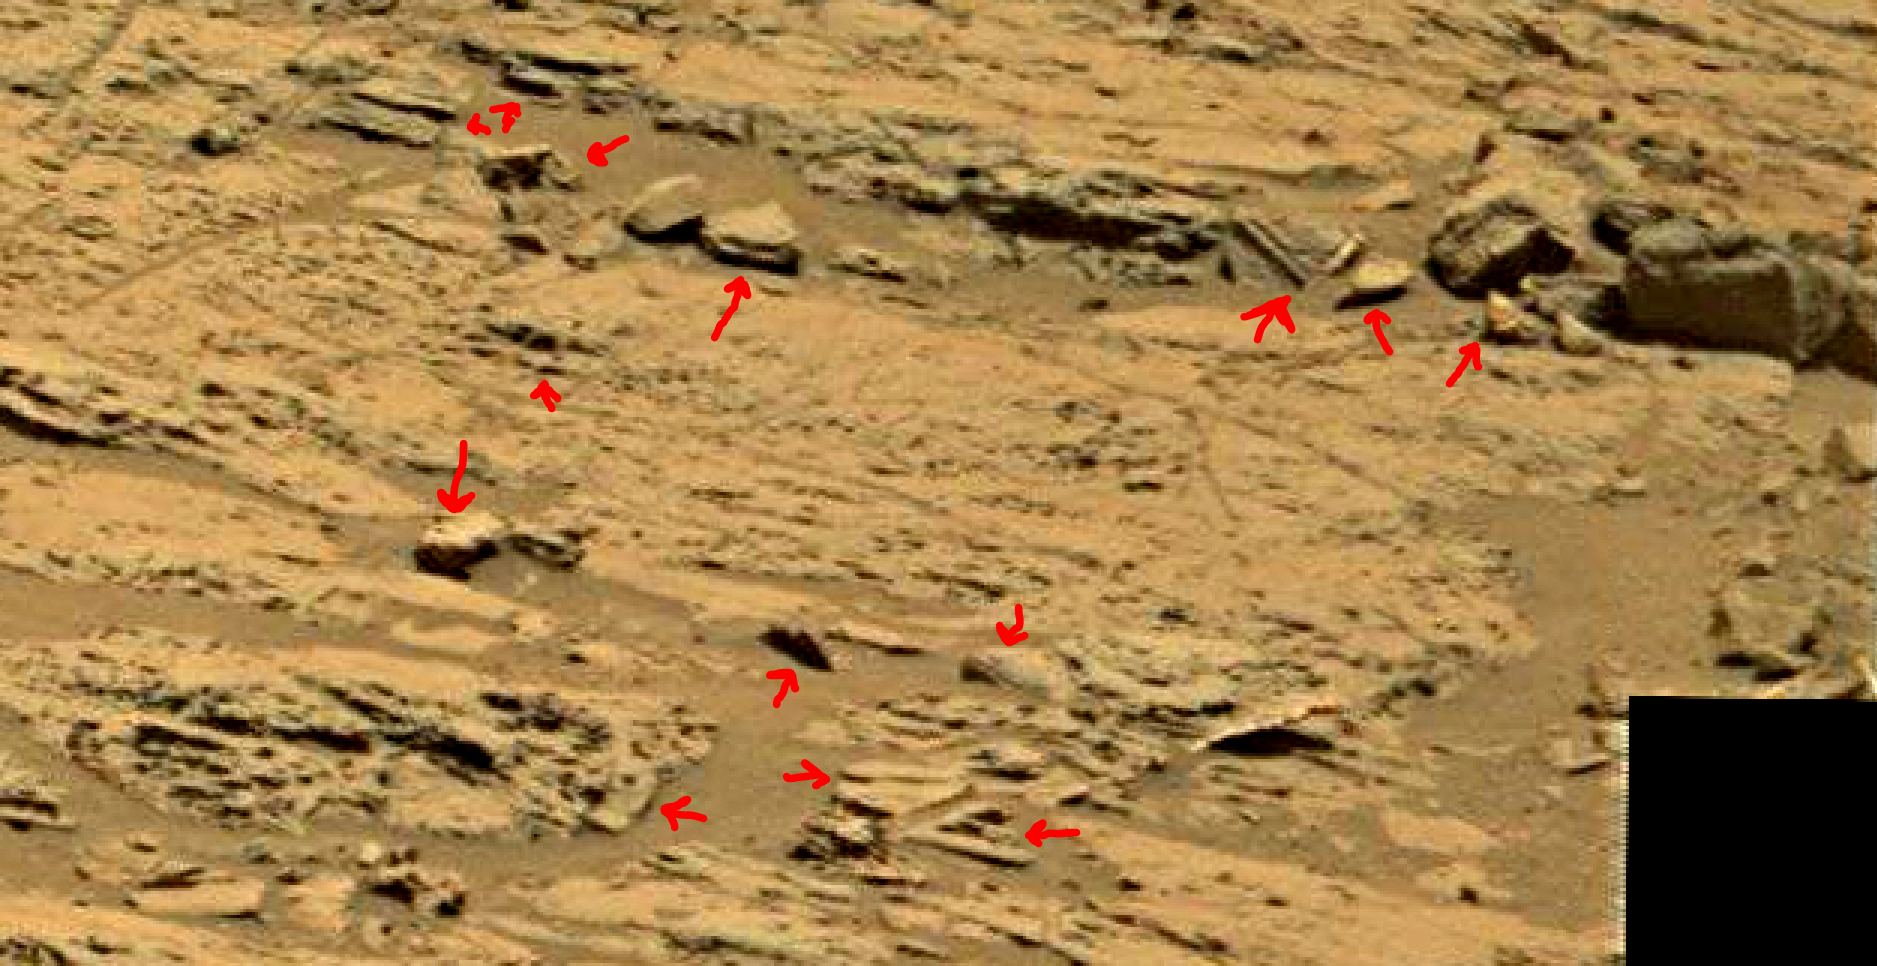 mars sol 1353 anomaly-artifacts 76 was life on mars